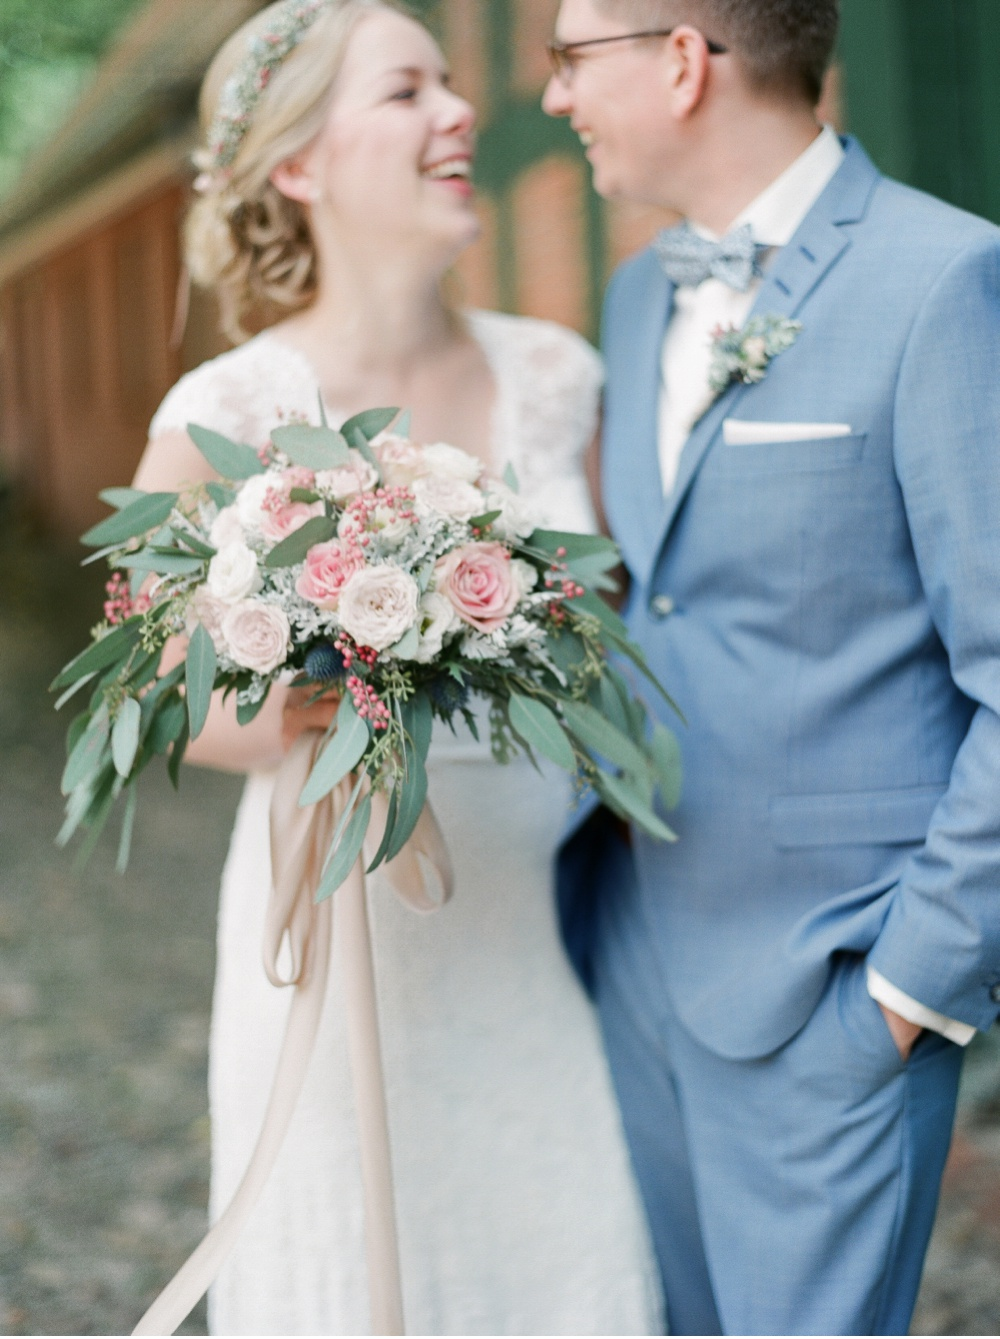 Paris_Provence_Destination_Wedding_Photographer©MadalinaSheldon_0027.jpg